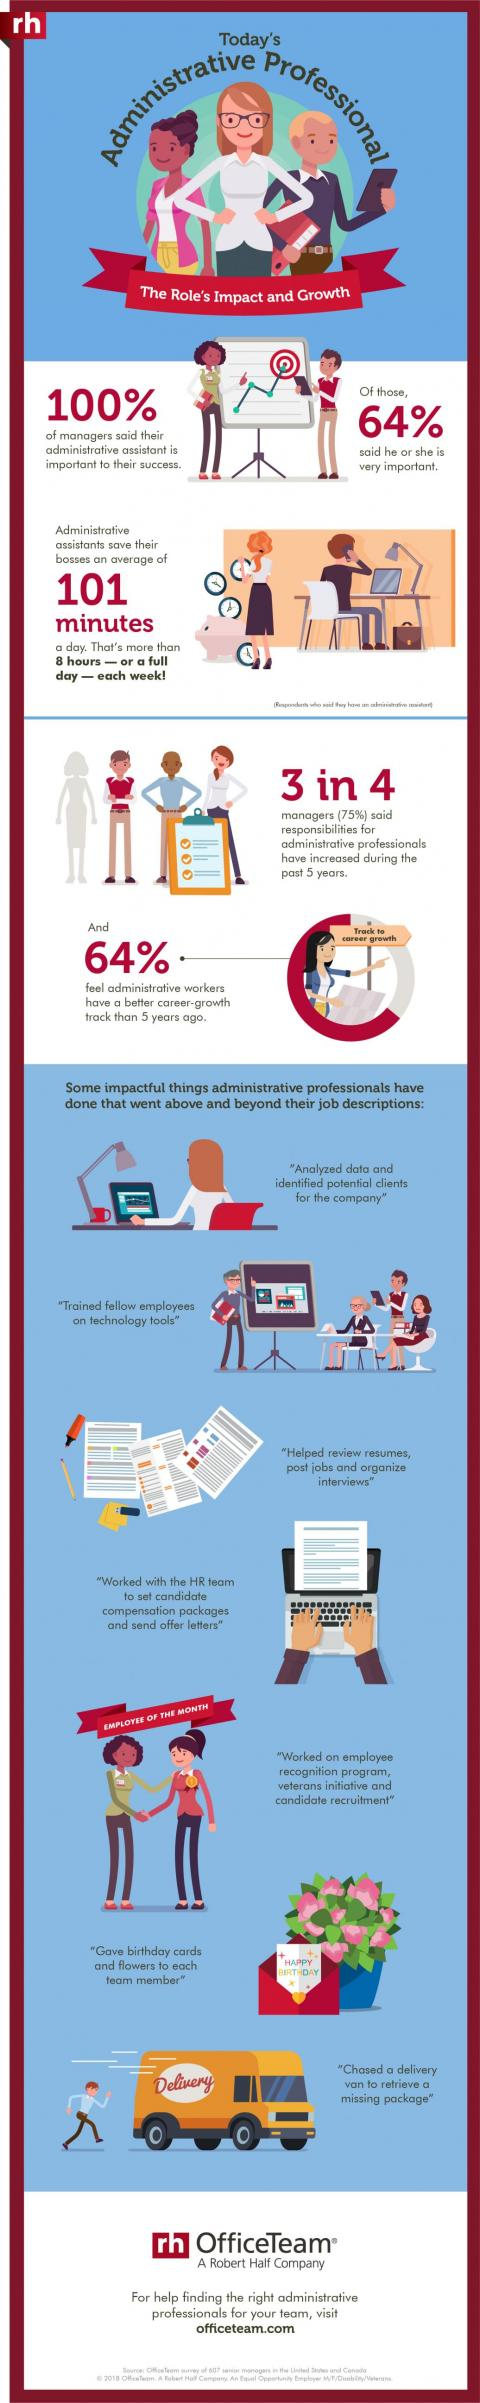 Infographic about today's administrative professional.